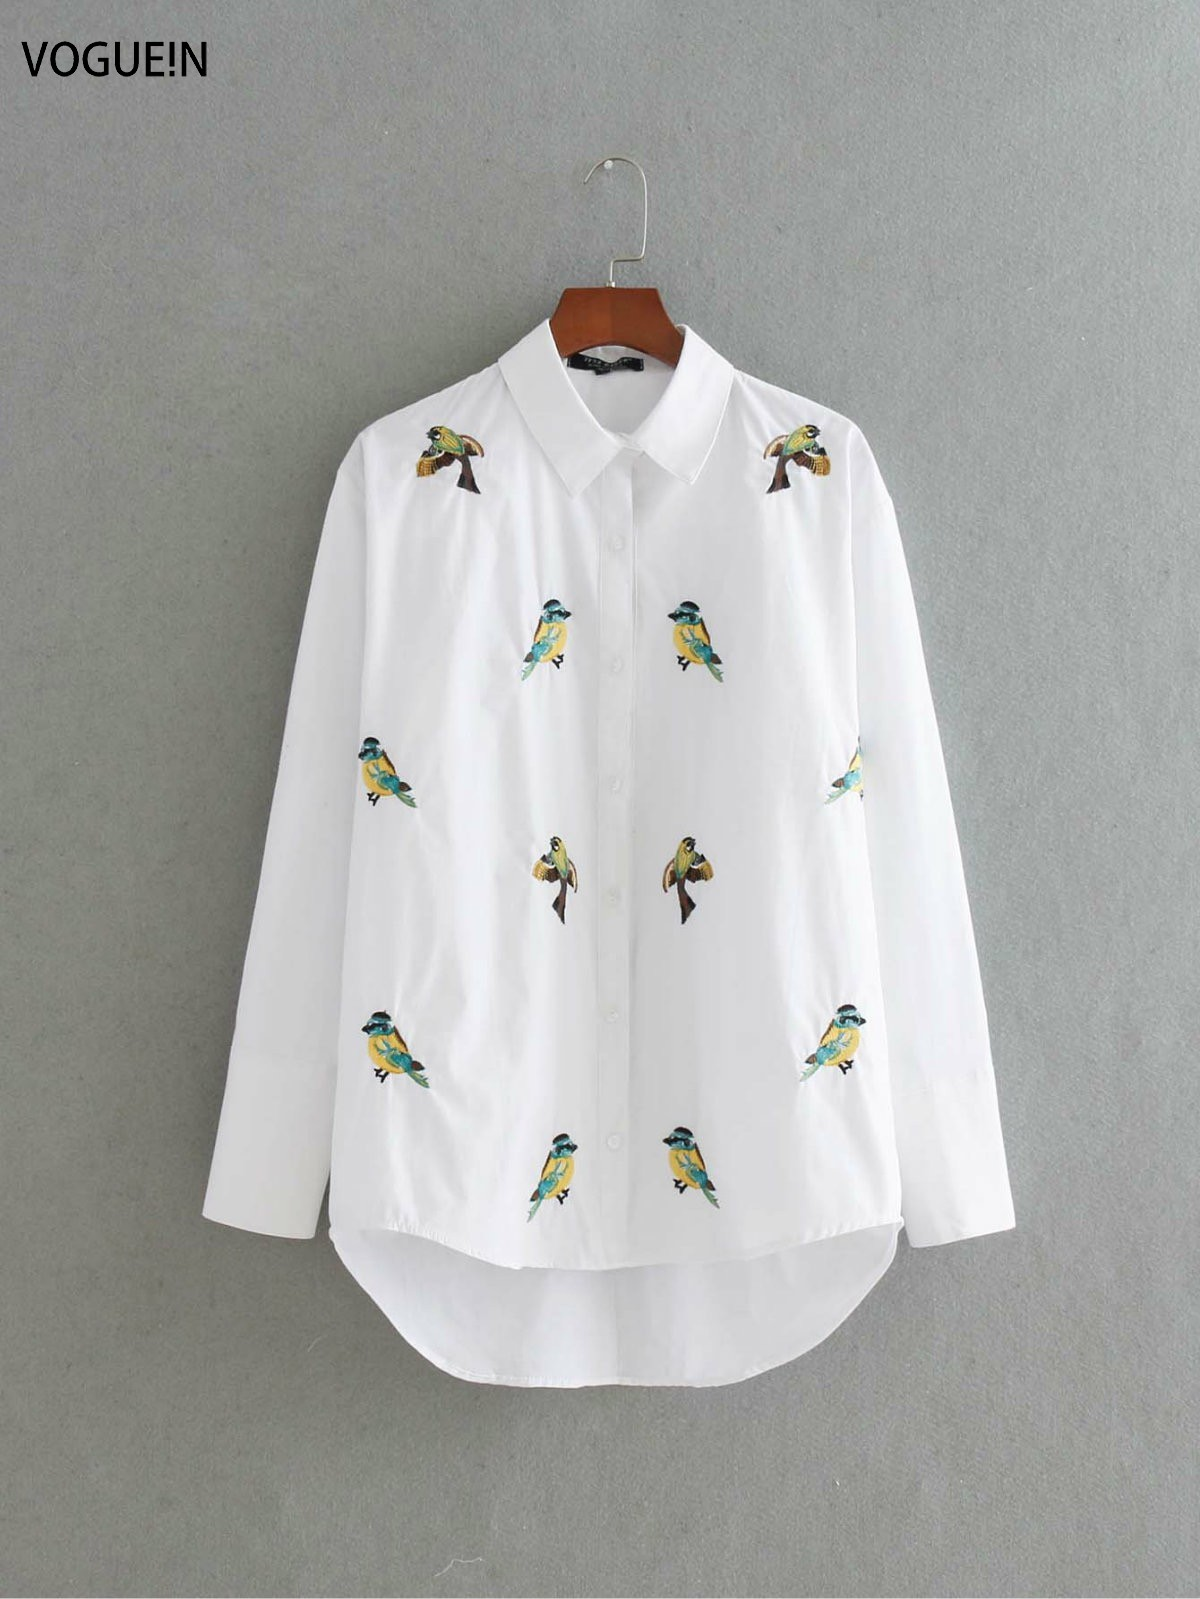 VOGUEIN New Womens Ladies White Animal Bird Embroidered Long Sleeve Blouse Tops Shirt Size SML Wholesale